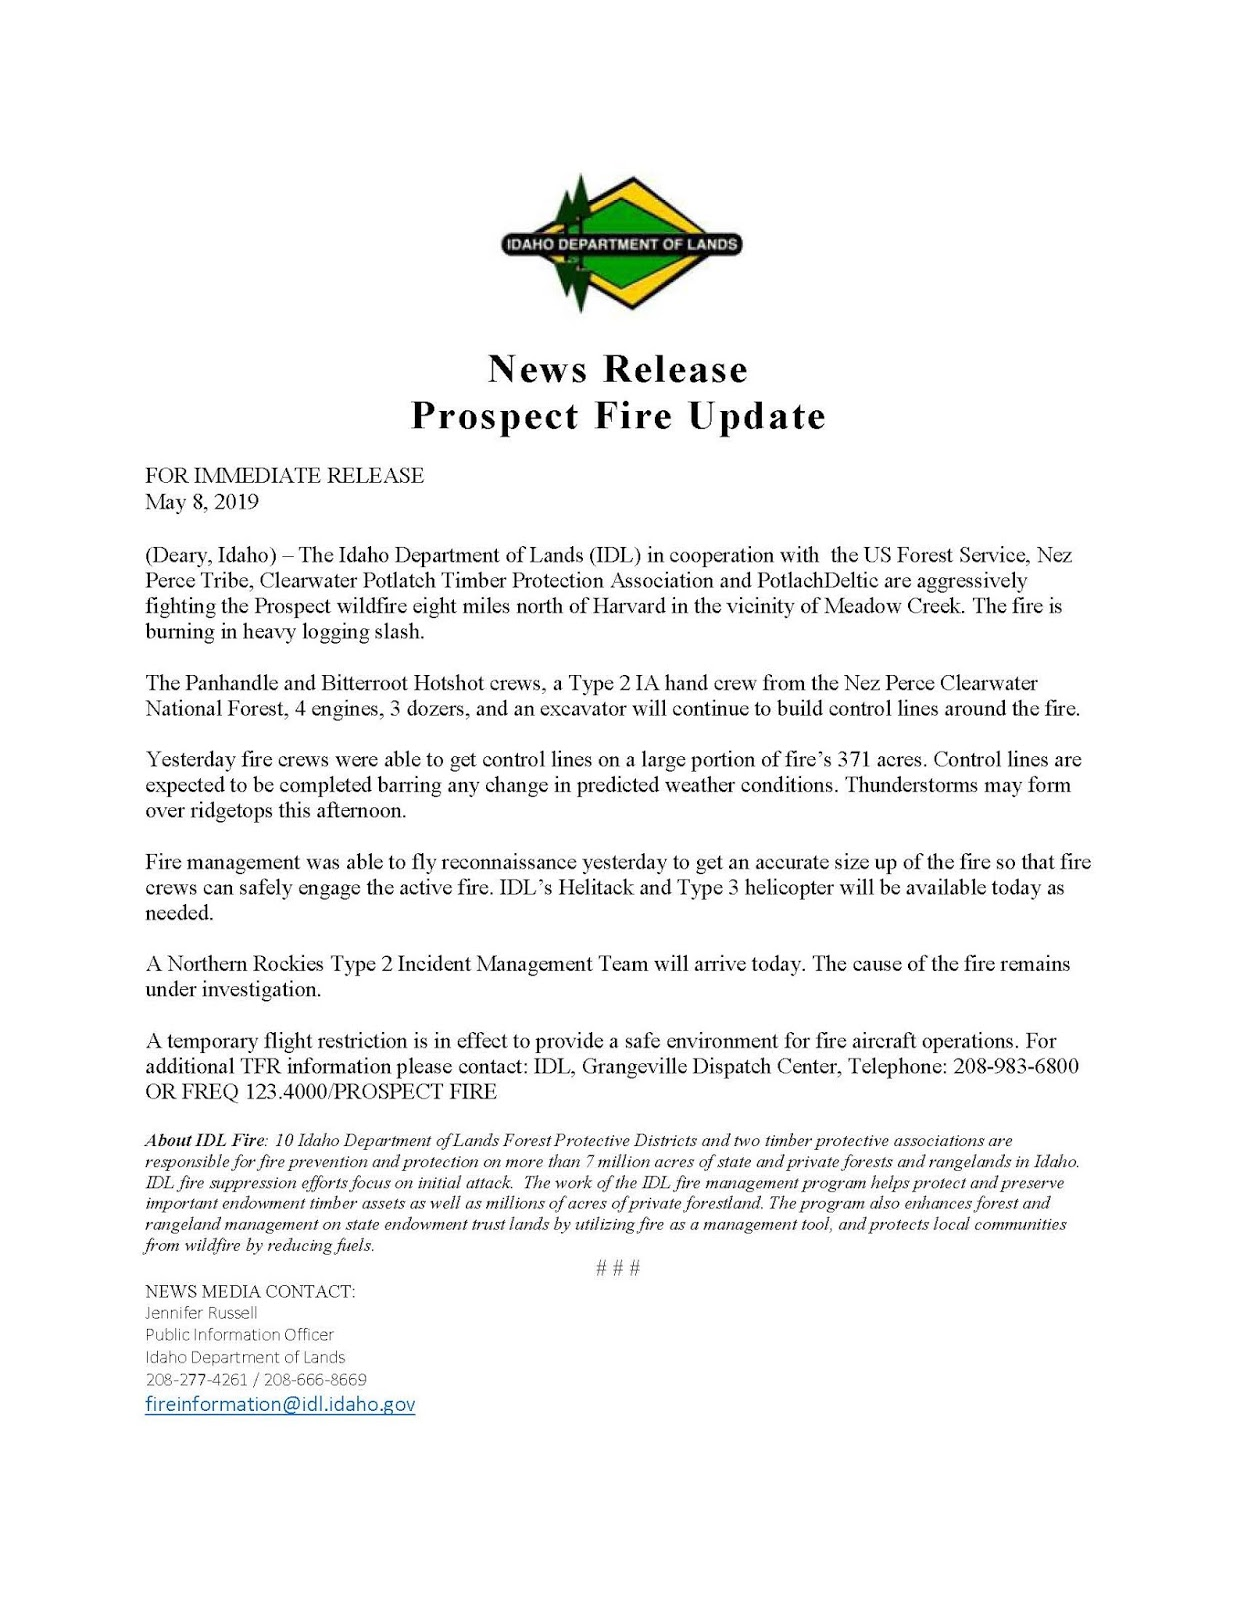 small resolution of prospect fire update may 8th 2019